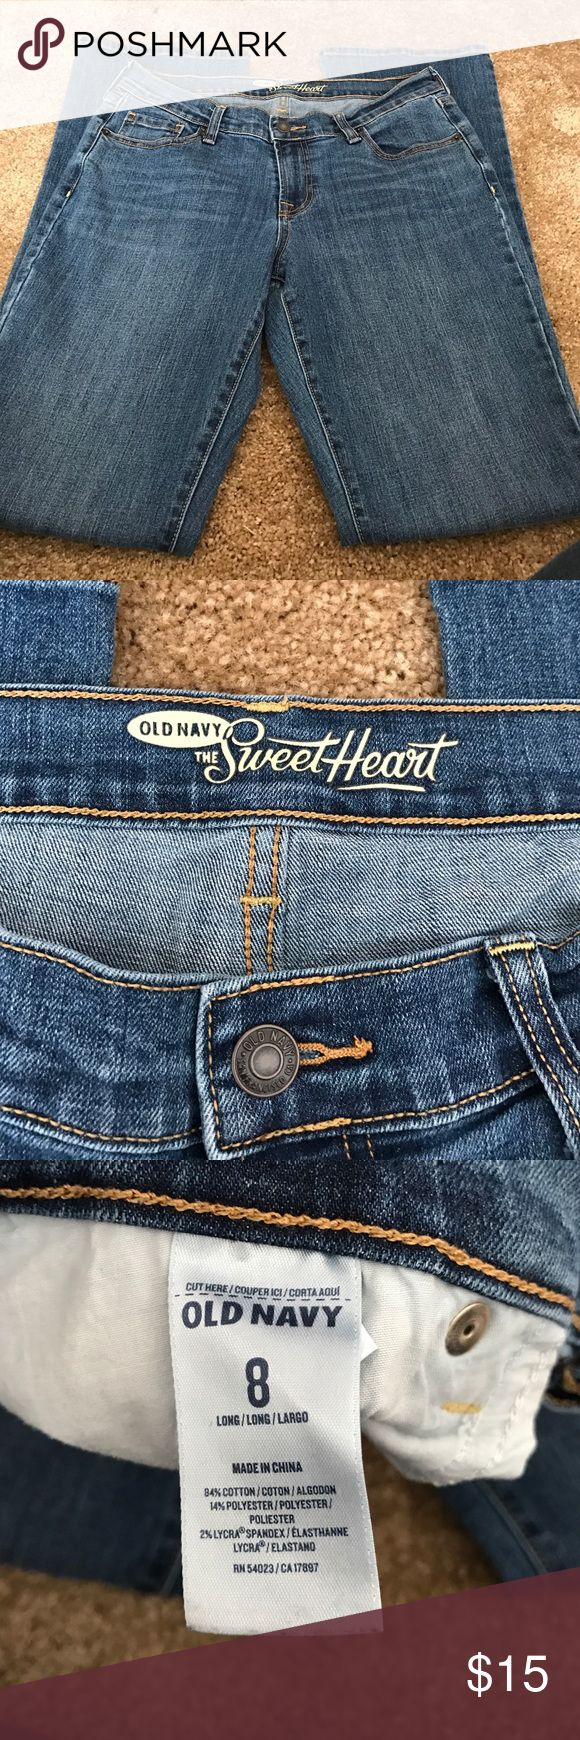 Old navy jeans Gently used great shape old navy sweetheart jeans Old Navy Jeans Boot Cut